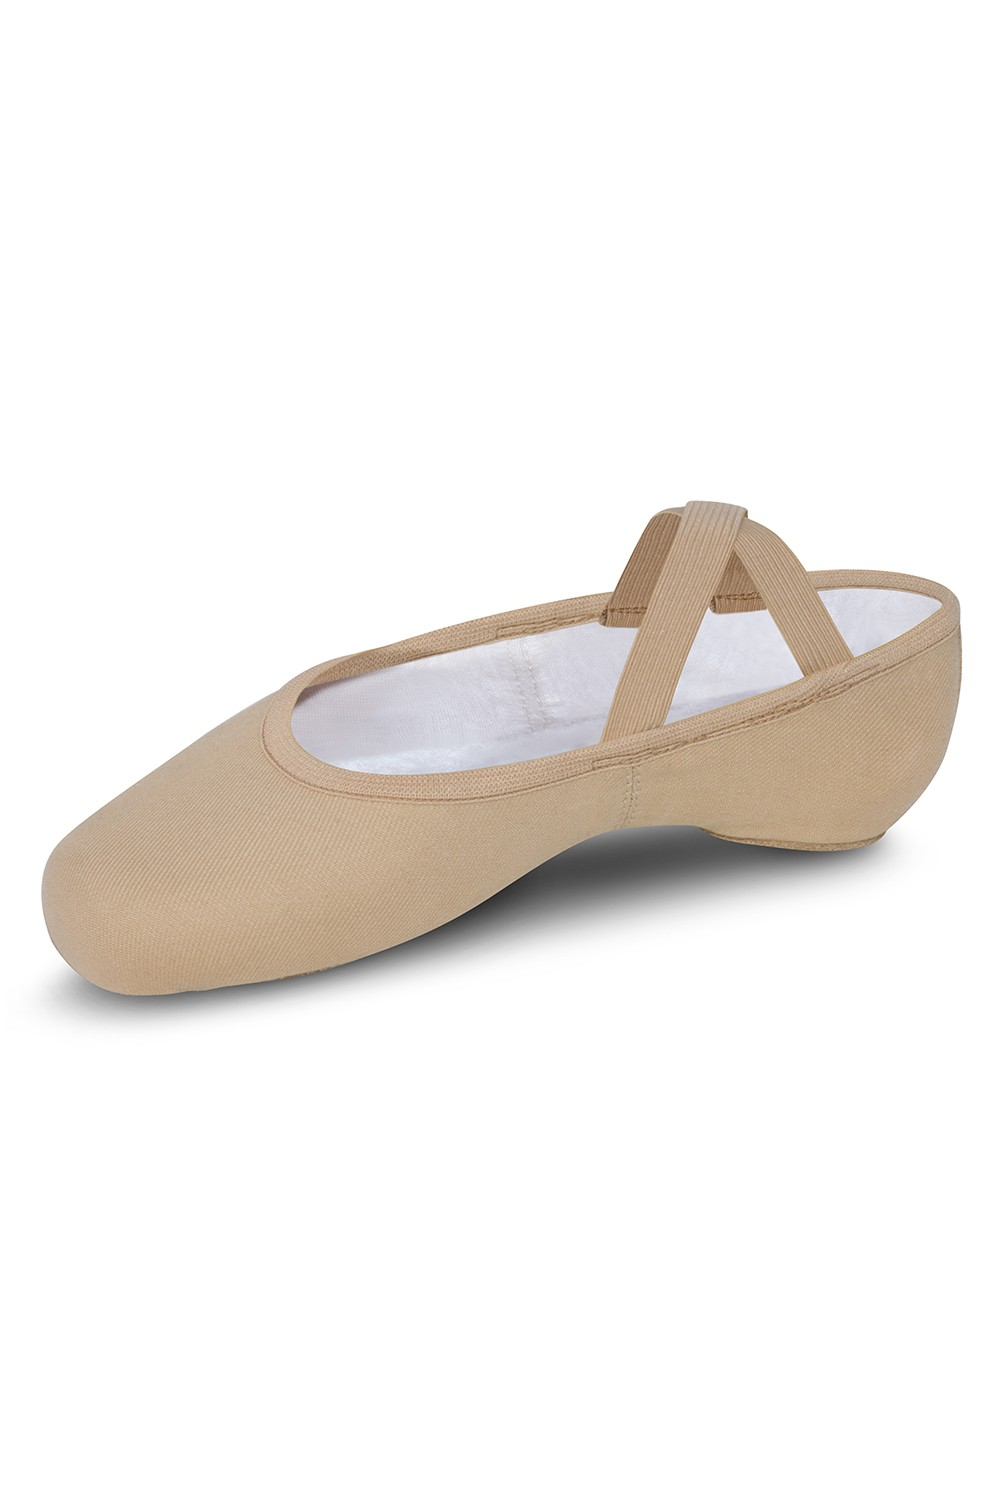 Performa Women's Ballet Shoes